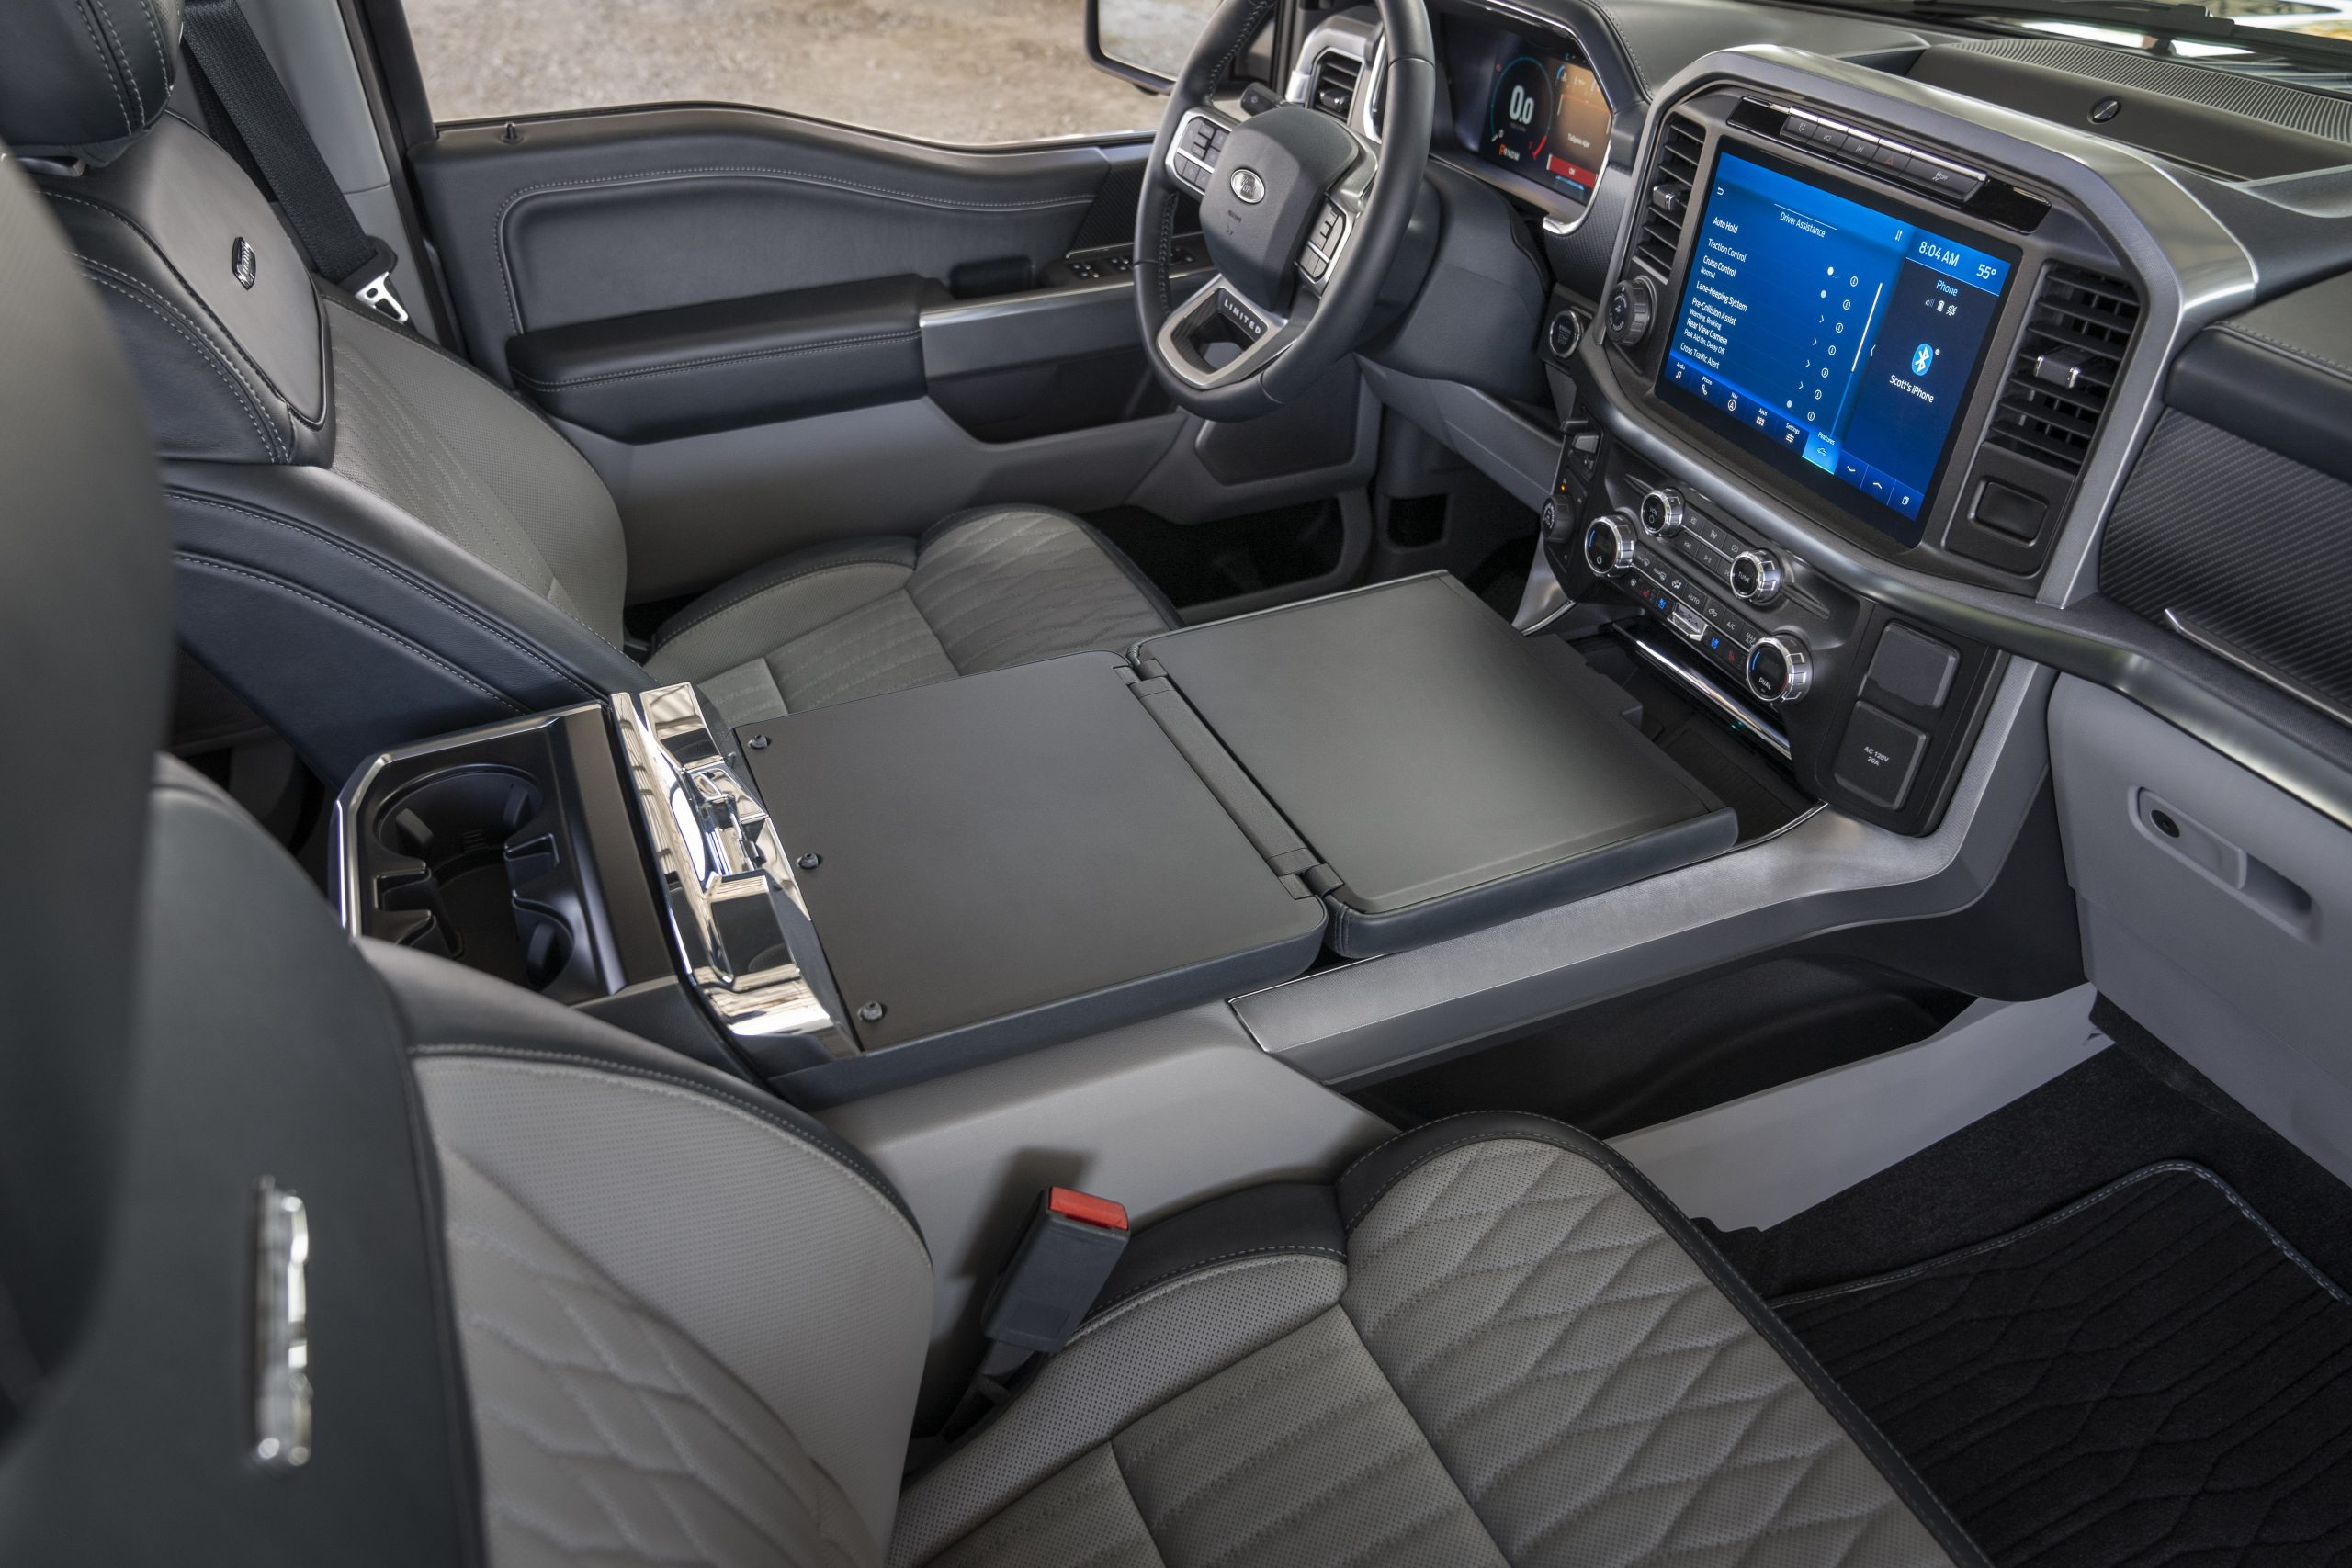 2021 Ford F-150 work surface interior